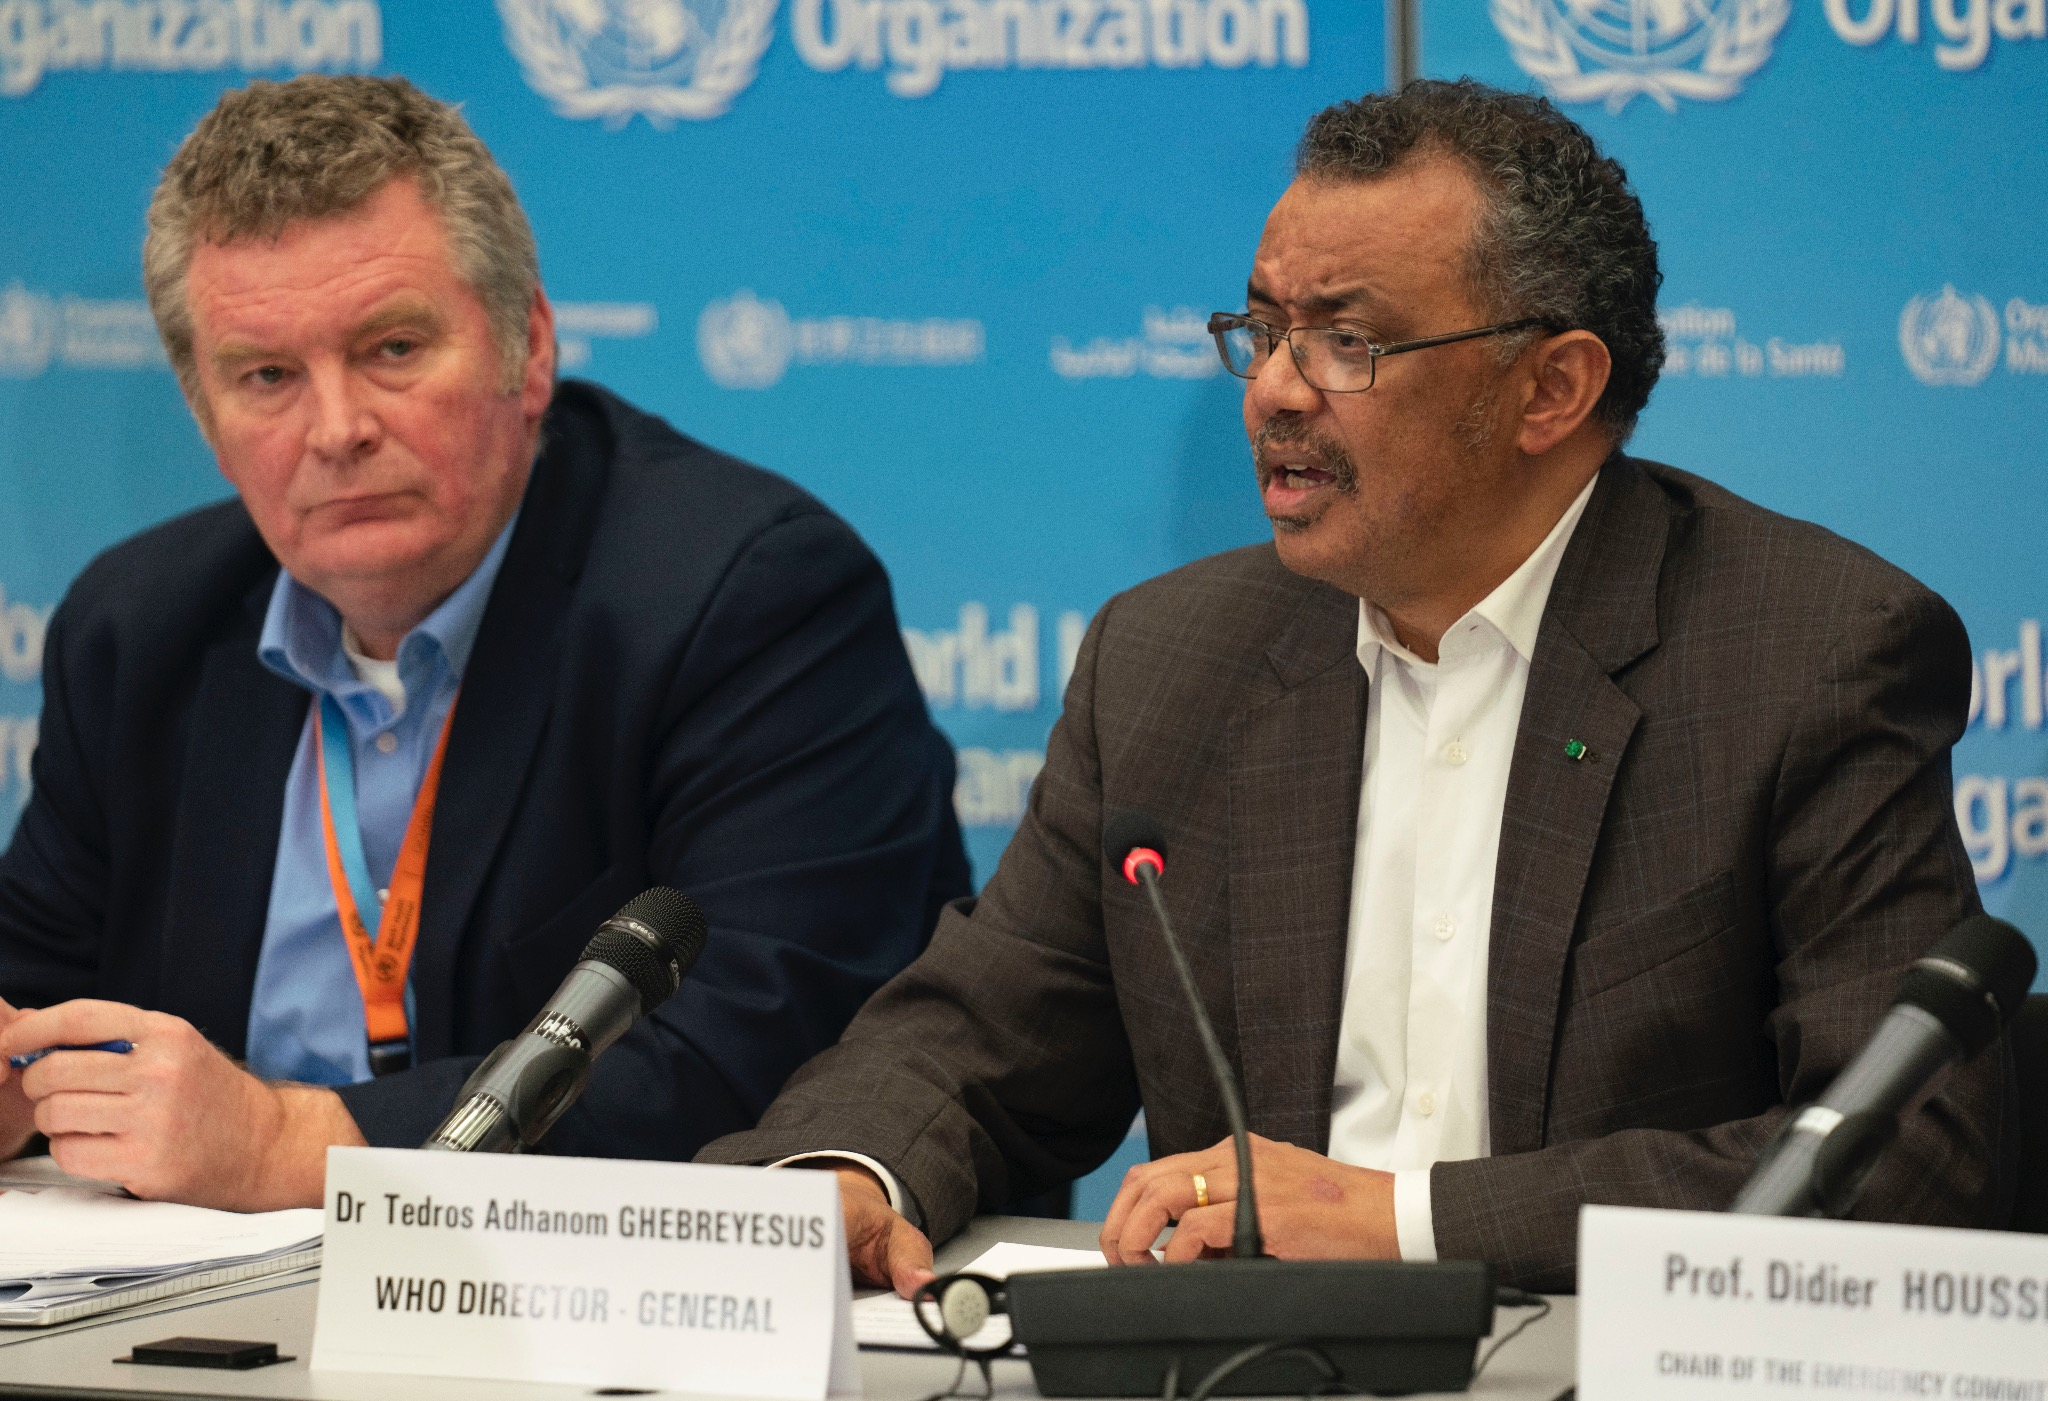 WHO emergencies director Michael Ryan (left) and WHO director-general Tedros Adhanom Ghebreyesus. File photo courtesy: Twitter/@WHO